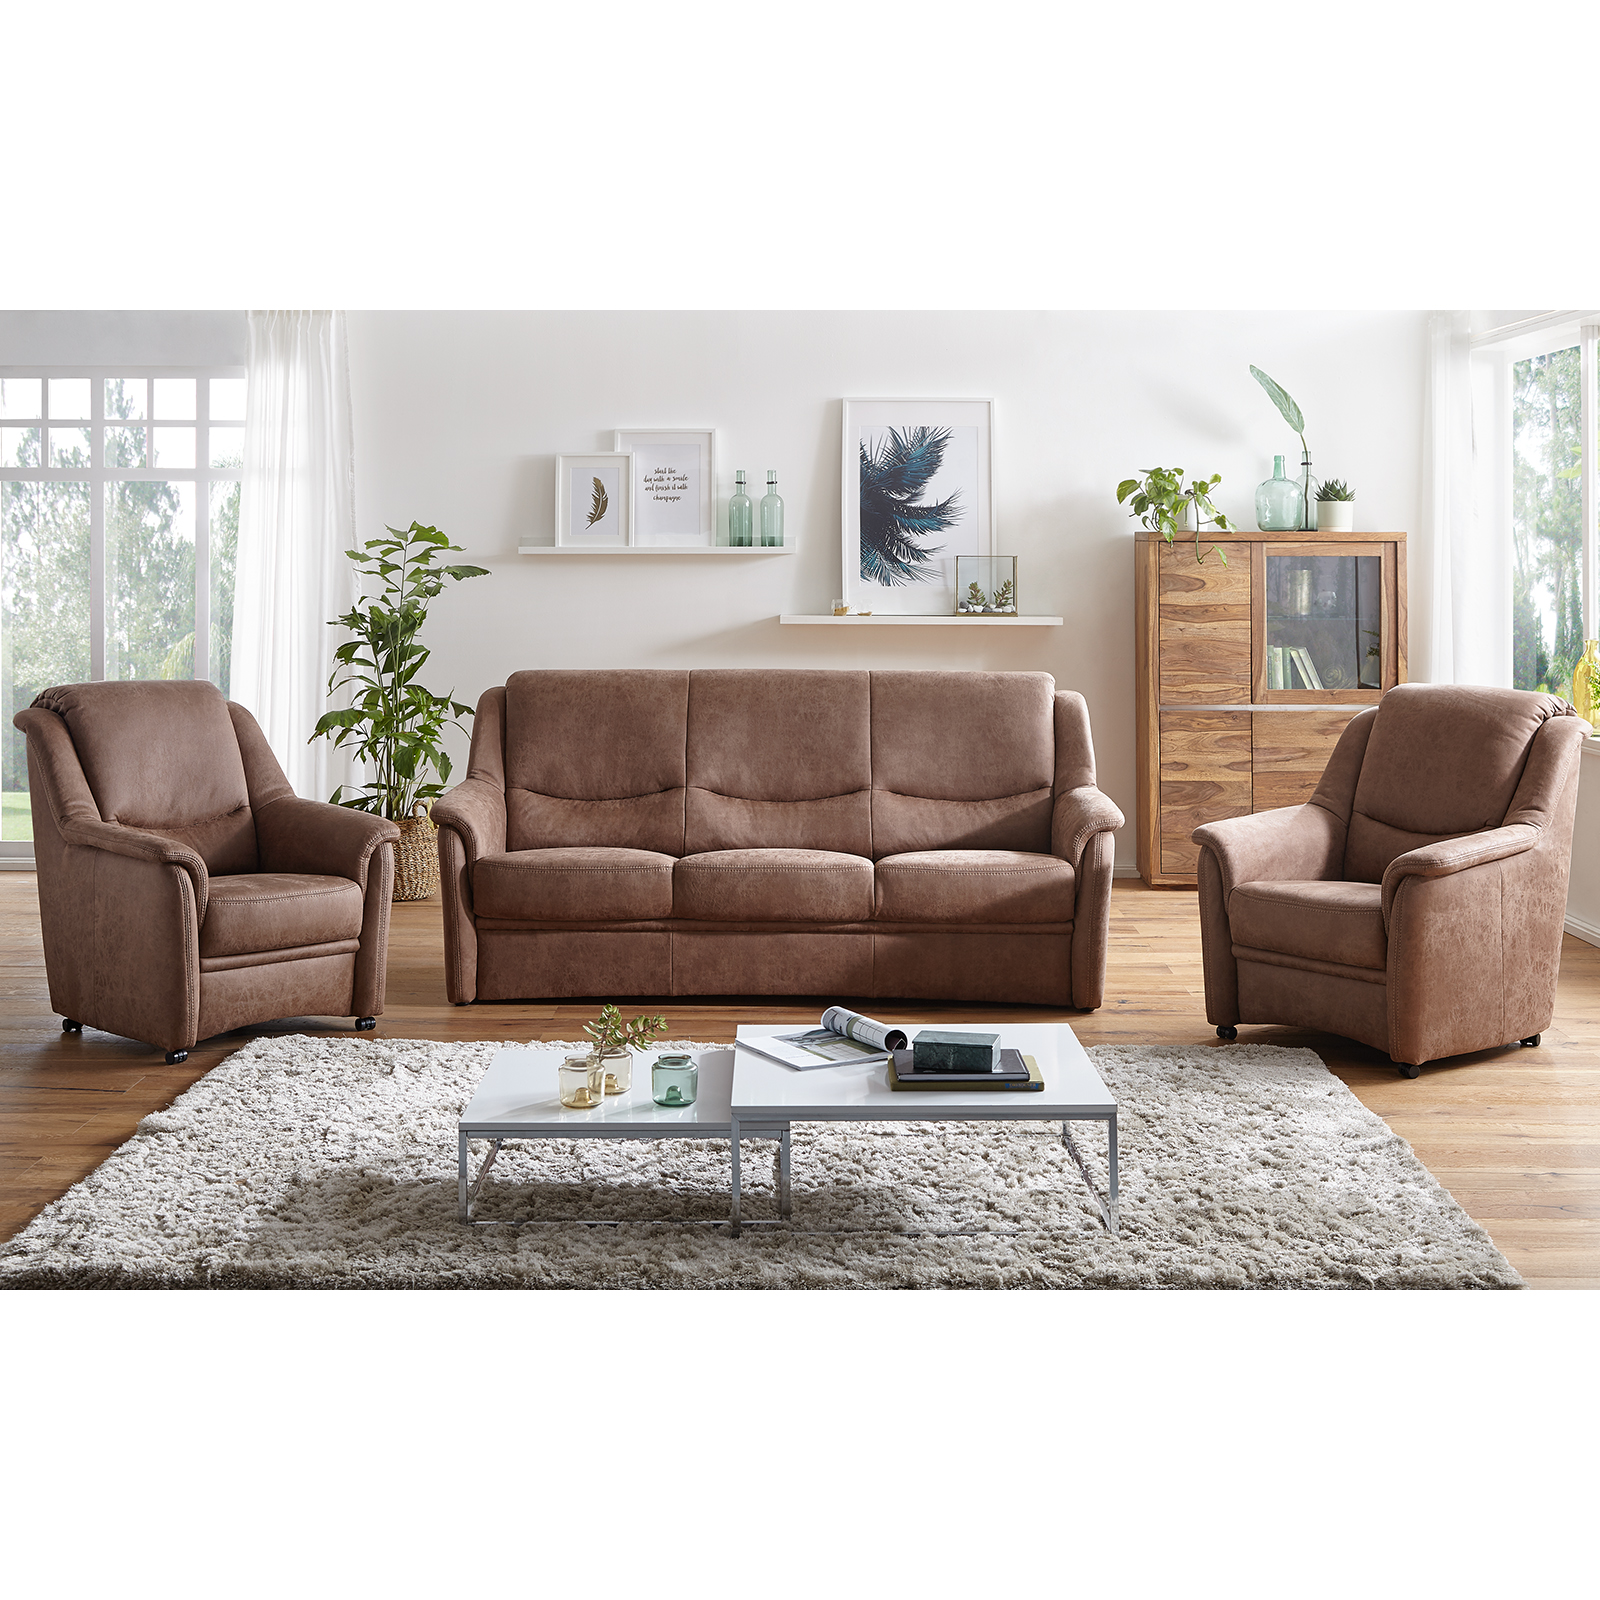 3 Sitzer Sofa toffee Microfaser